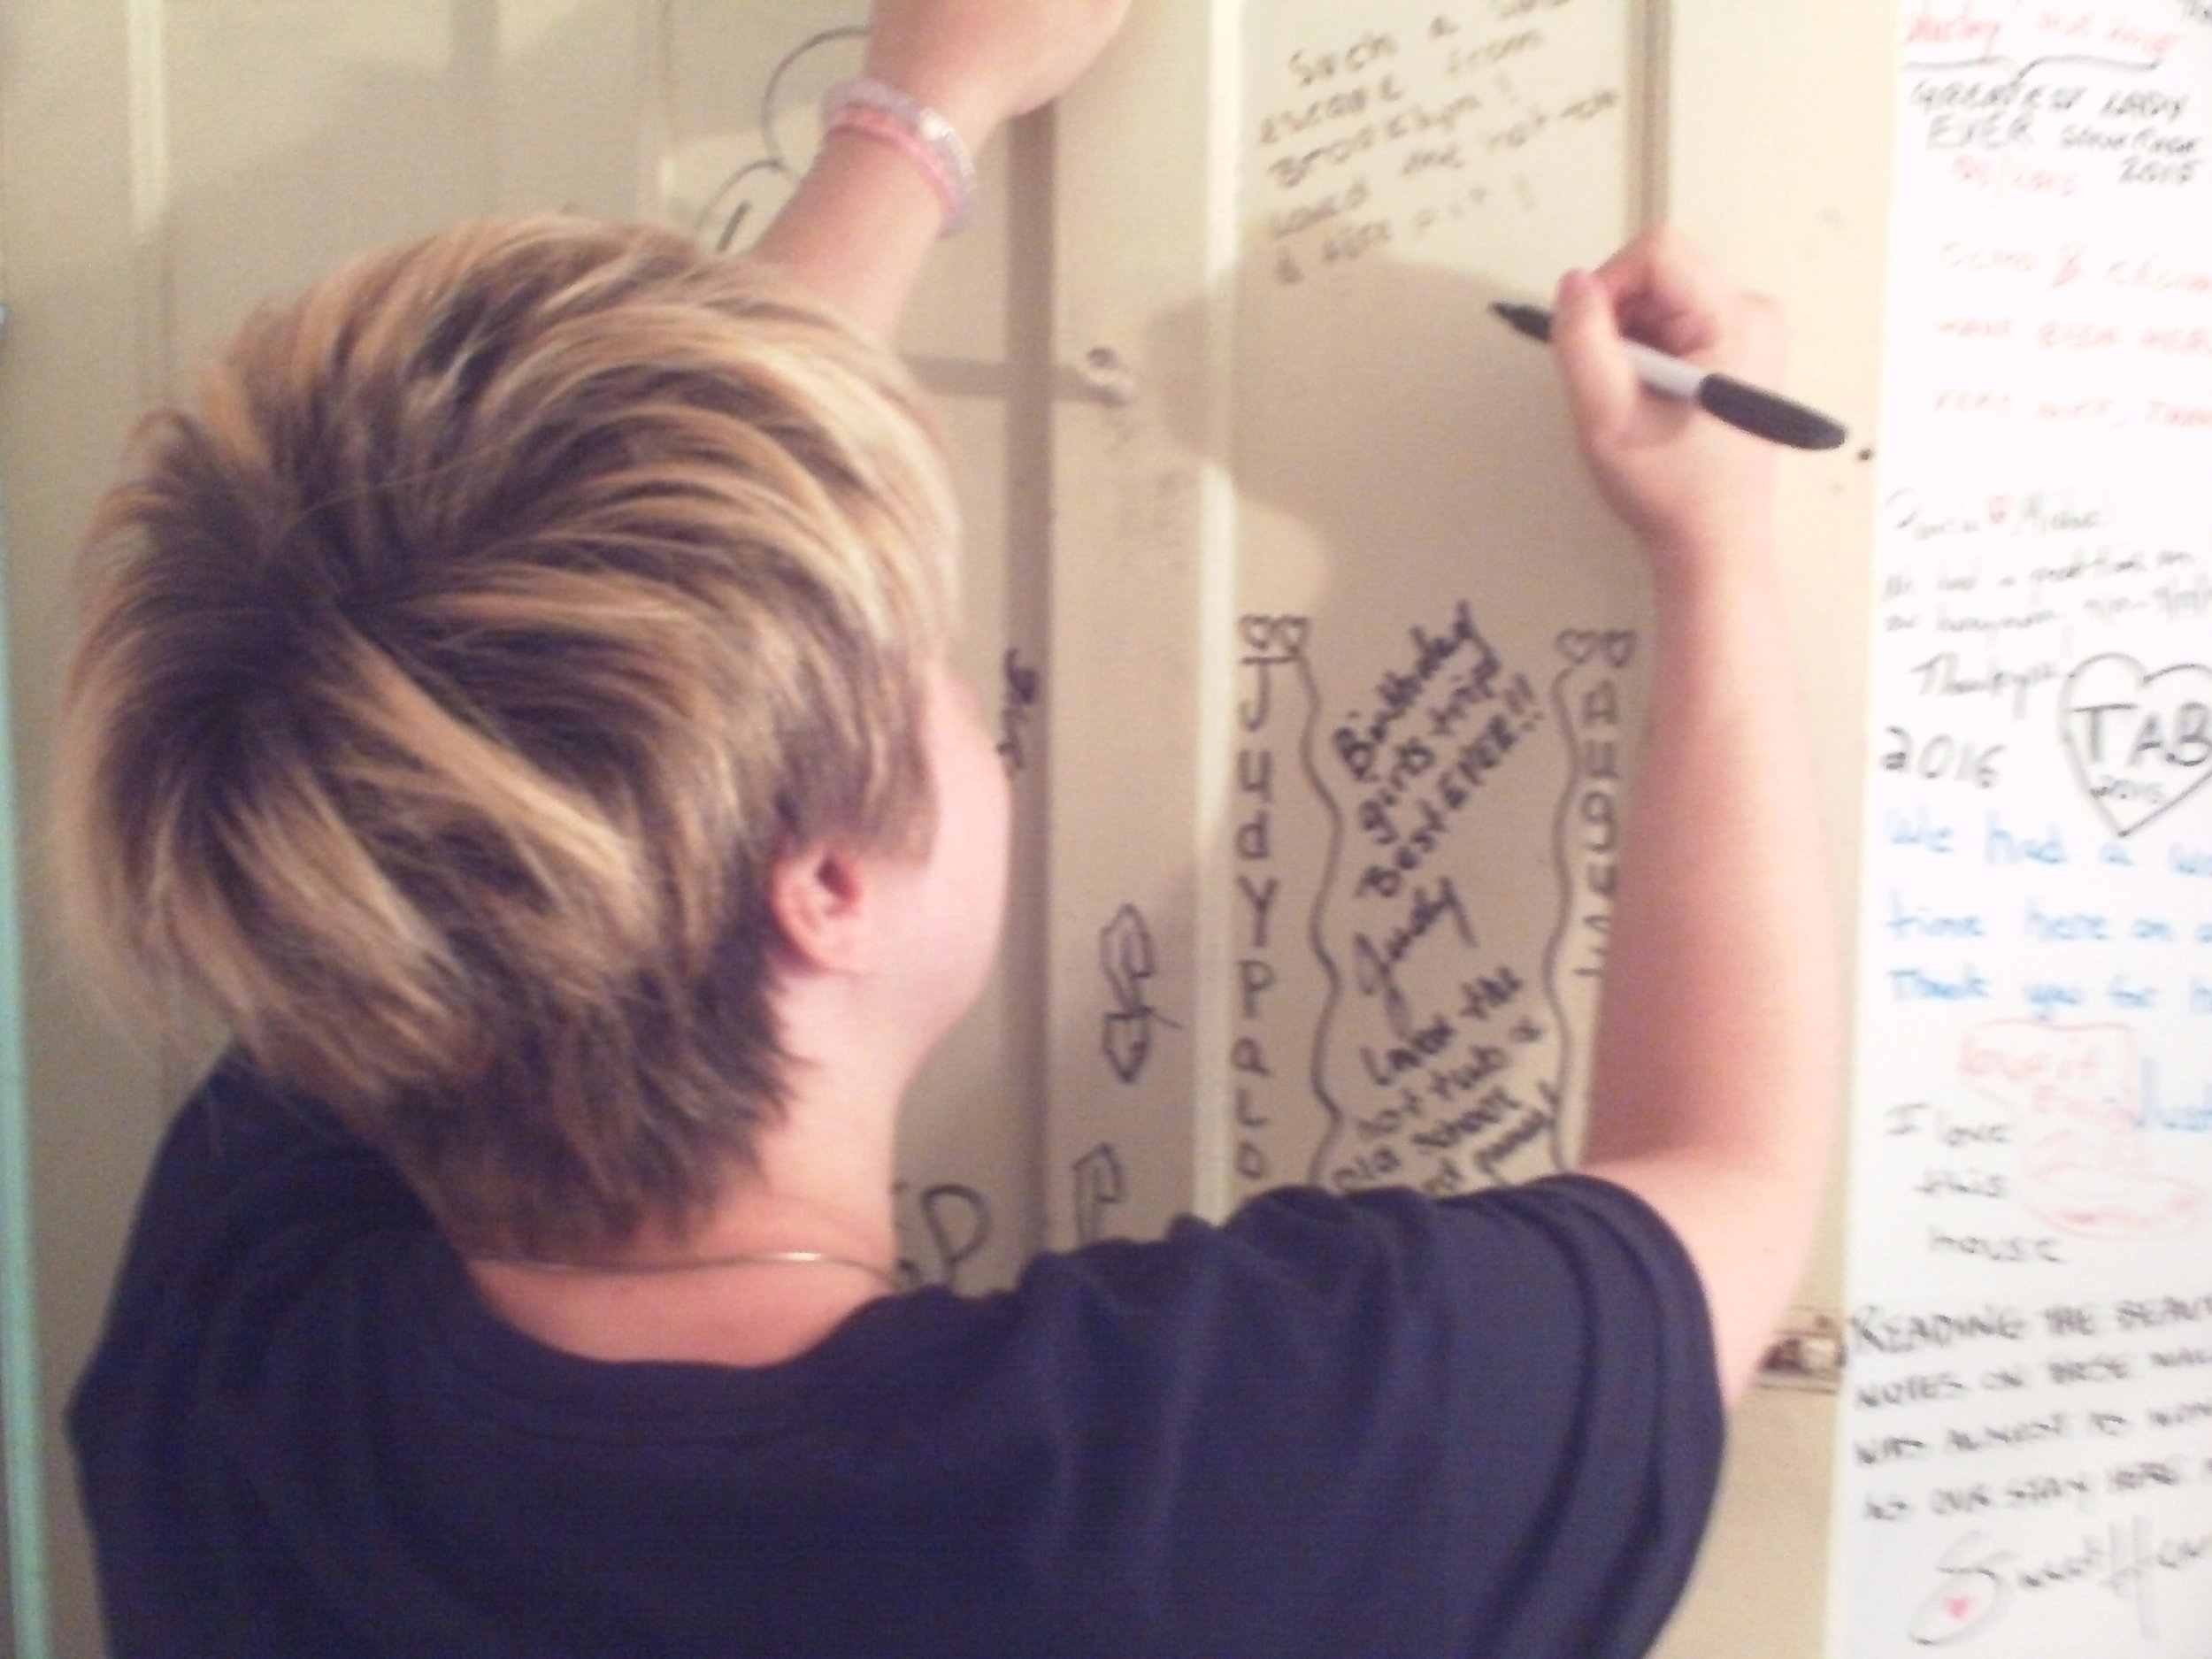 Instead of the normal guest book, the owners have the visitors sign the walls and doors of the bathroom. Super cute!